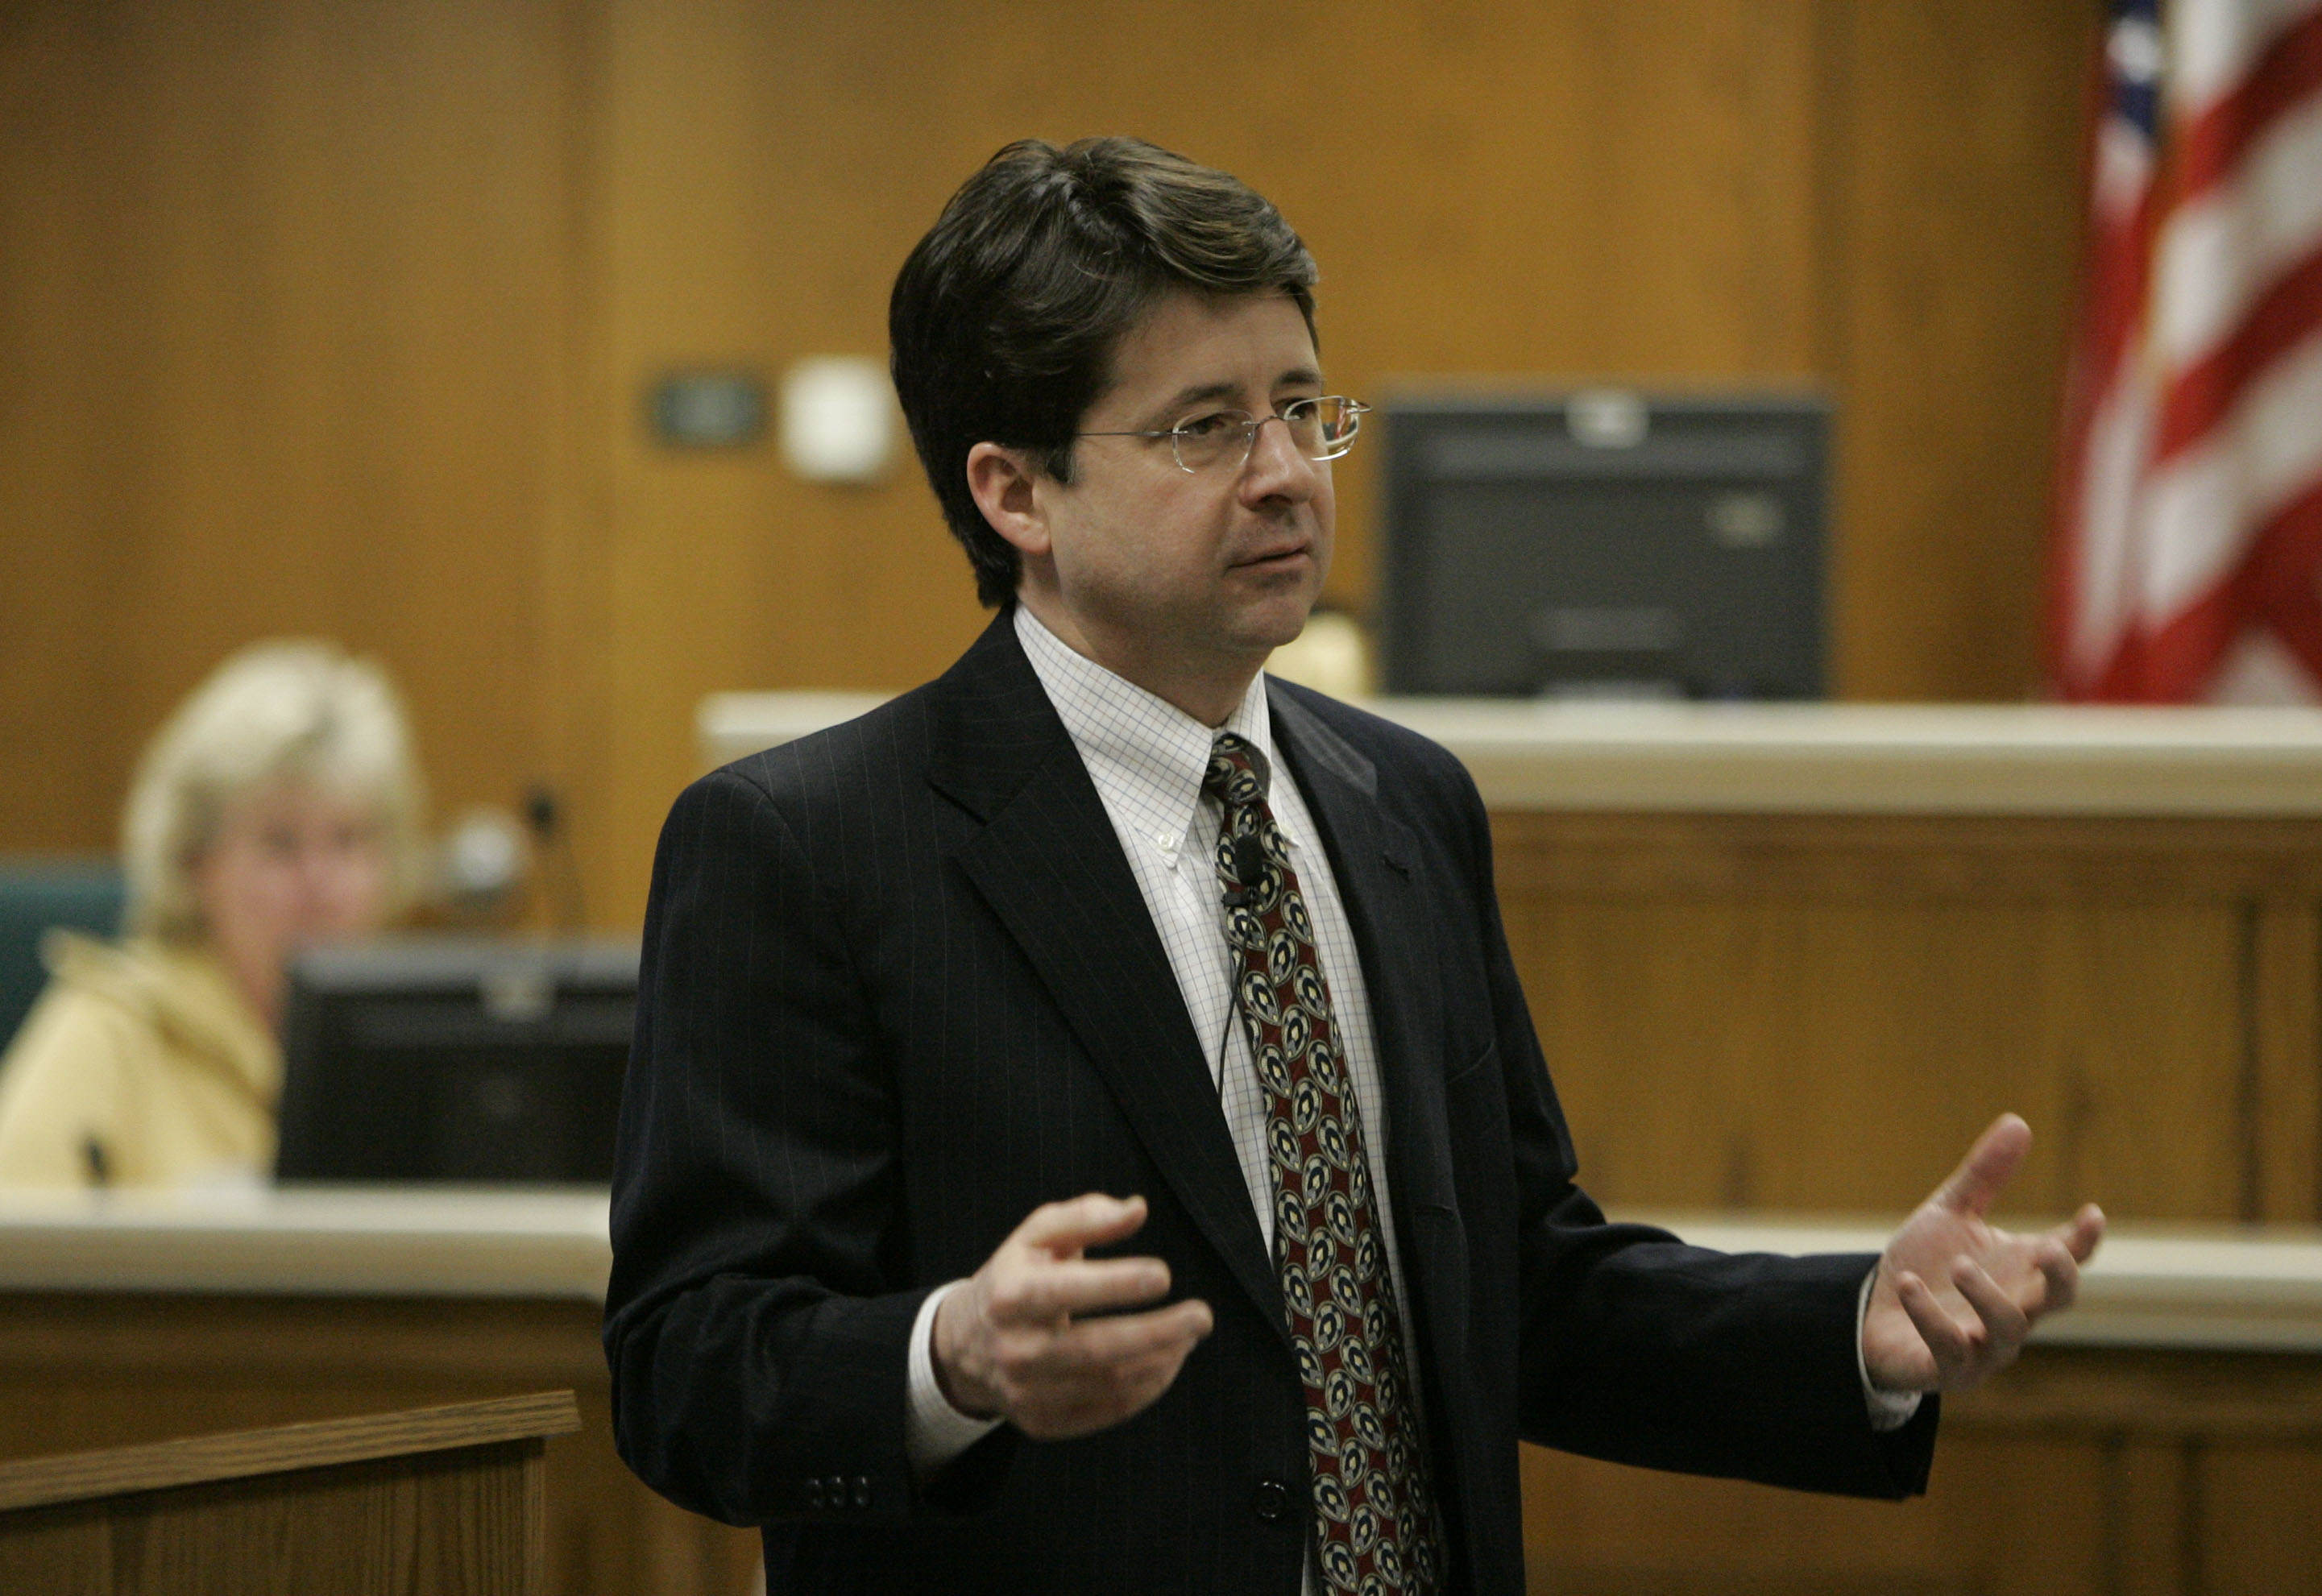 Everyones Favourite Making A Murderer Lawyer To Get Own Series strang2